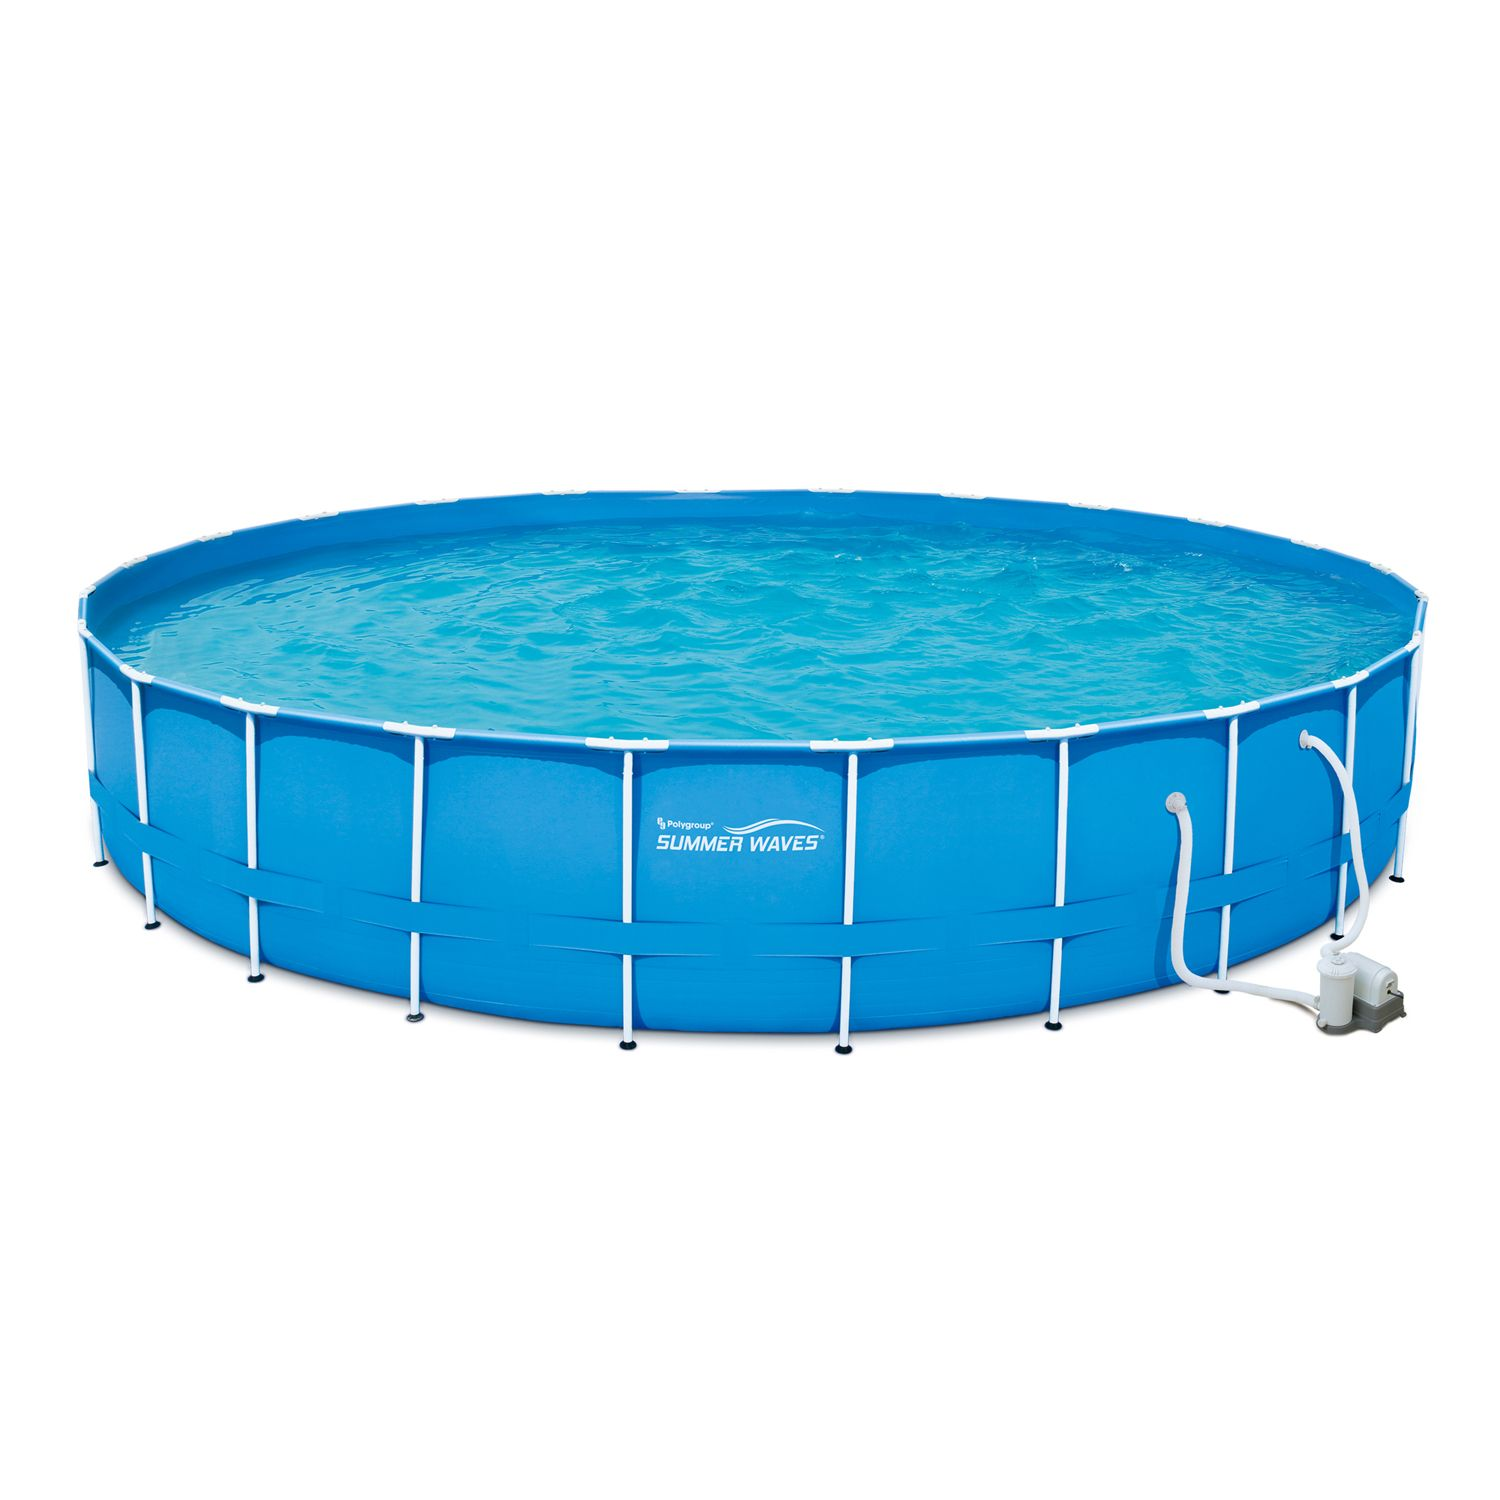 Intex 12 X 30 Metal Frame Above Ground Swimming Pool With Filter Pump Walmart Com In 2020 Above Ground Swimming Pools Summer Waves In Ground Pools